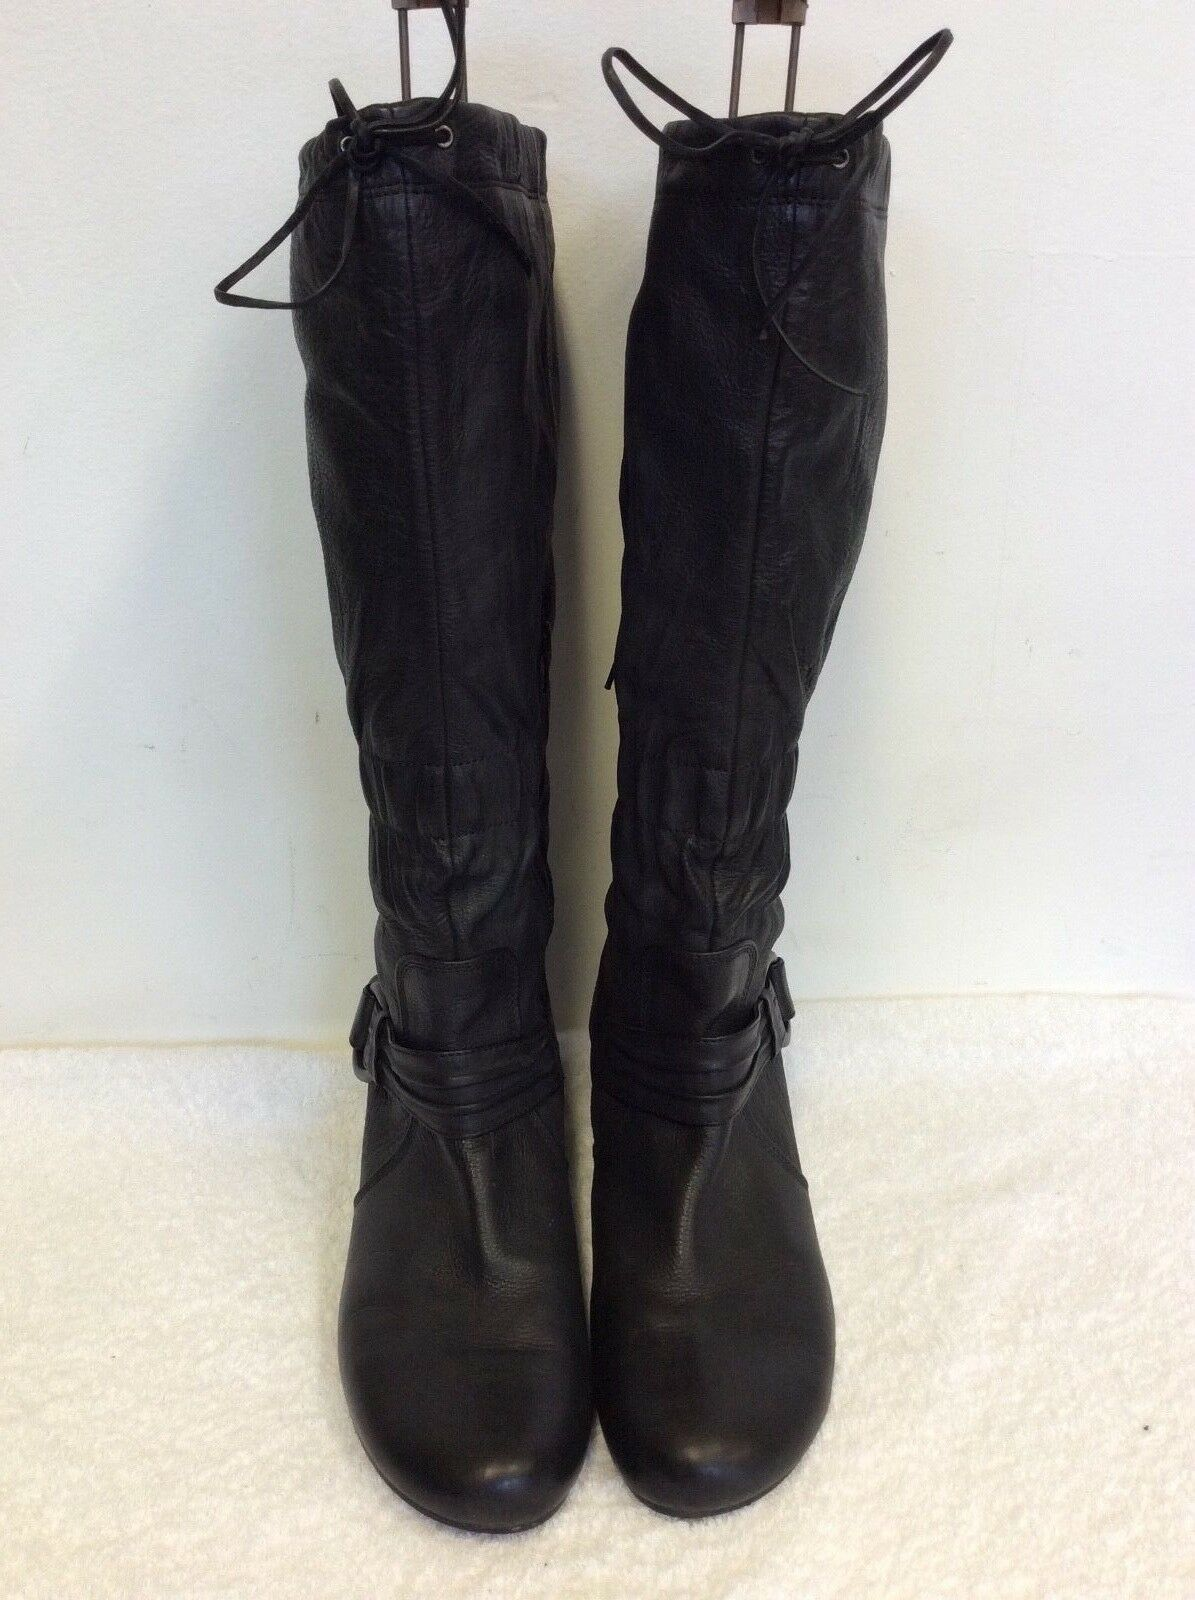 HOGL BLACK LEATHER KNEE HIGH HEELED BUCKLE TRIM DRAWSTRING TIE BOOTS SIZE 8/42